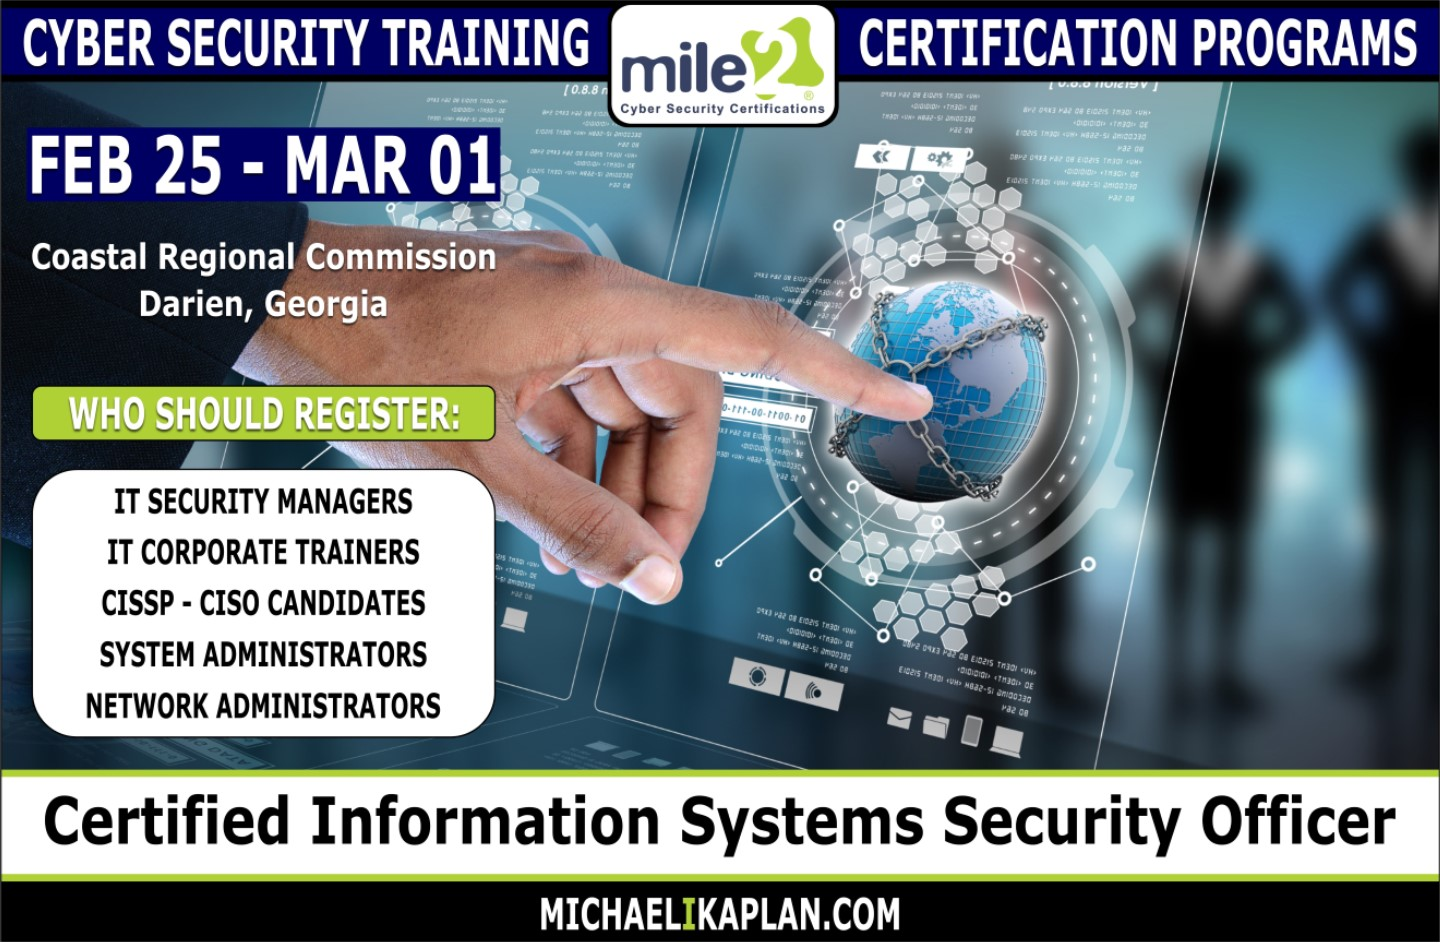 Michael I Kaplan Certified Information Systems Security Officer